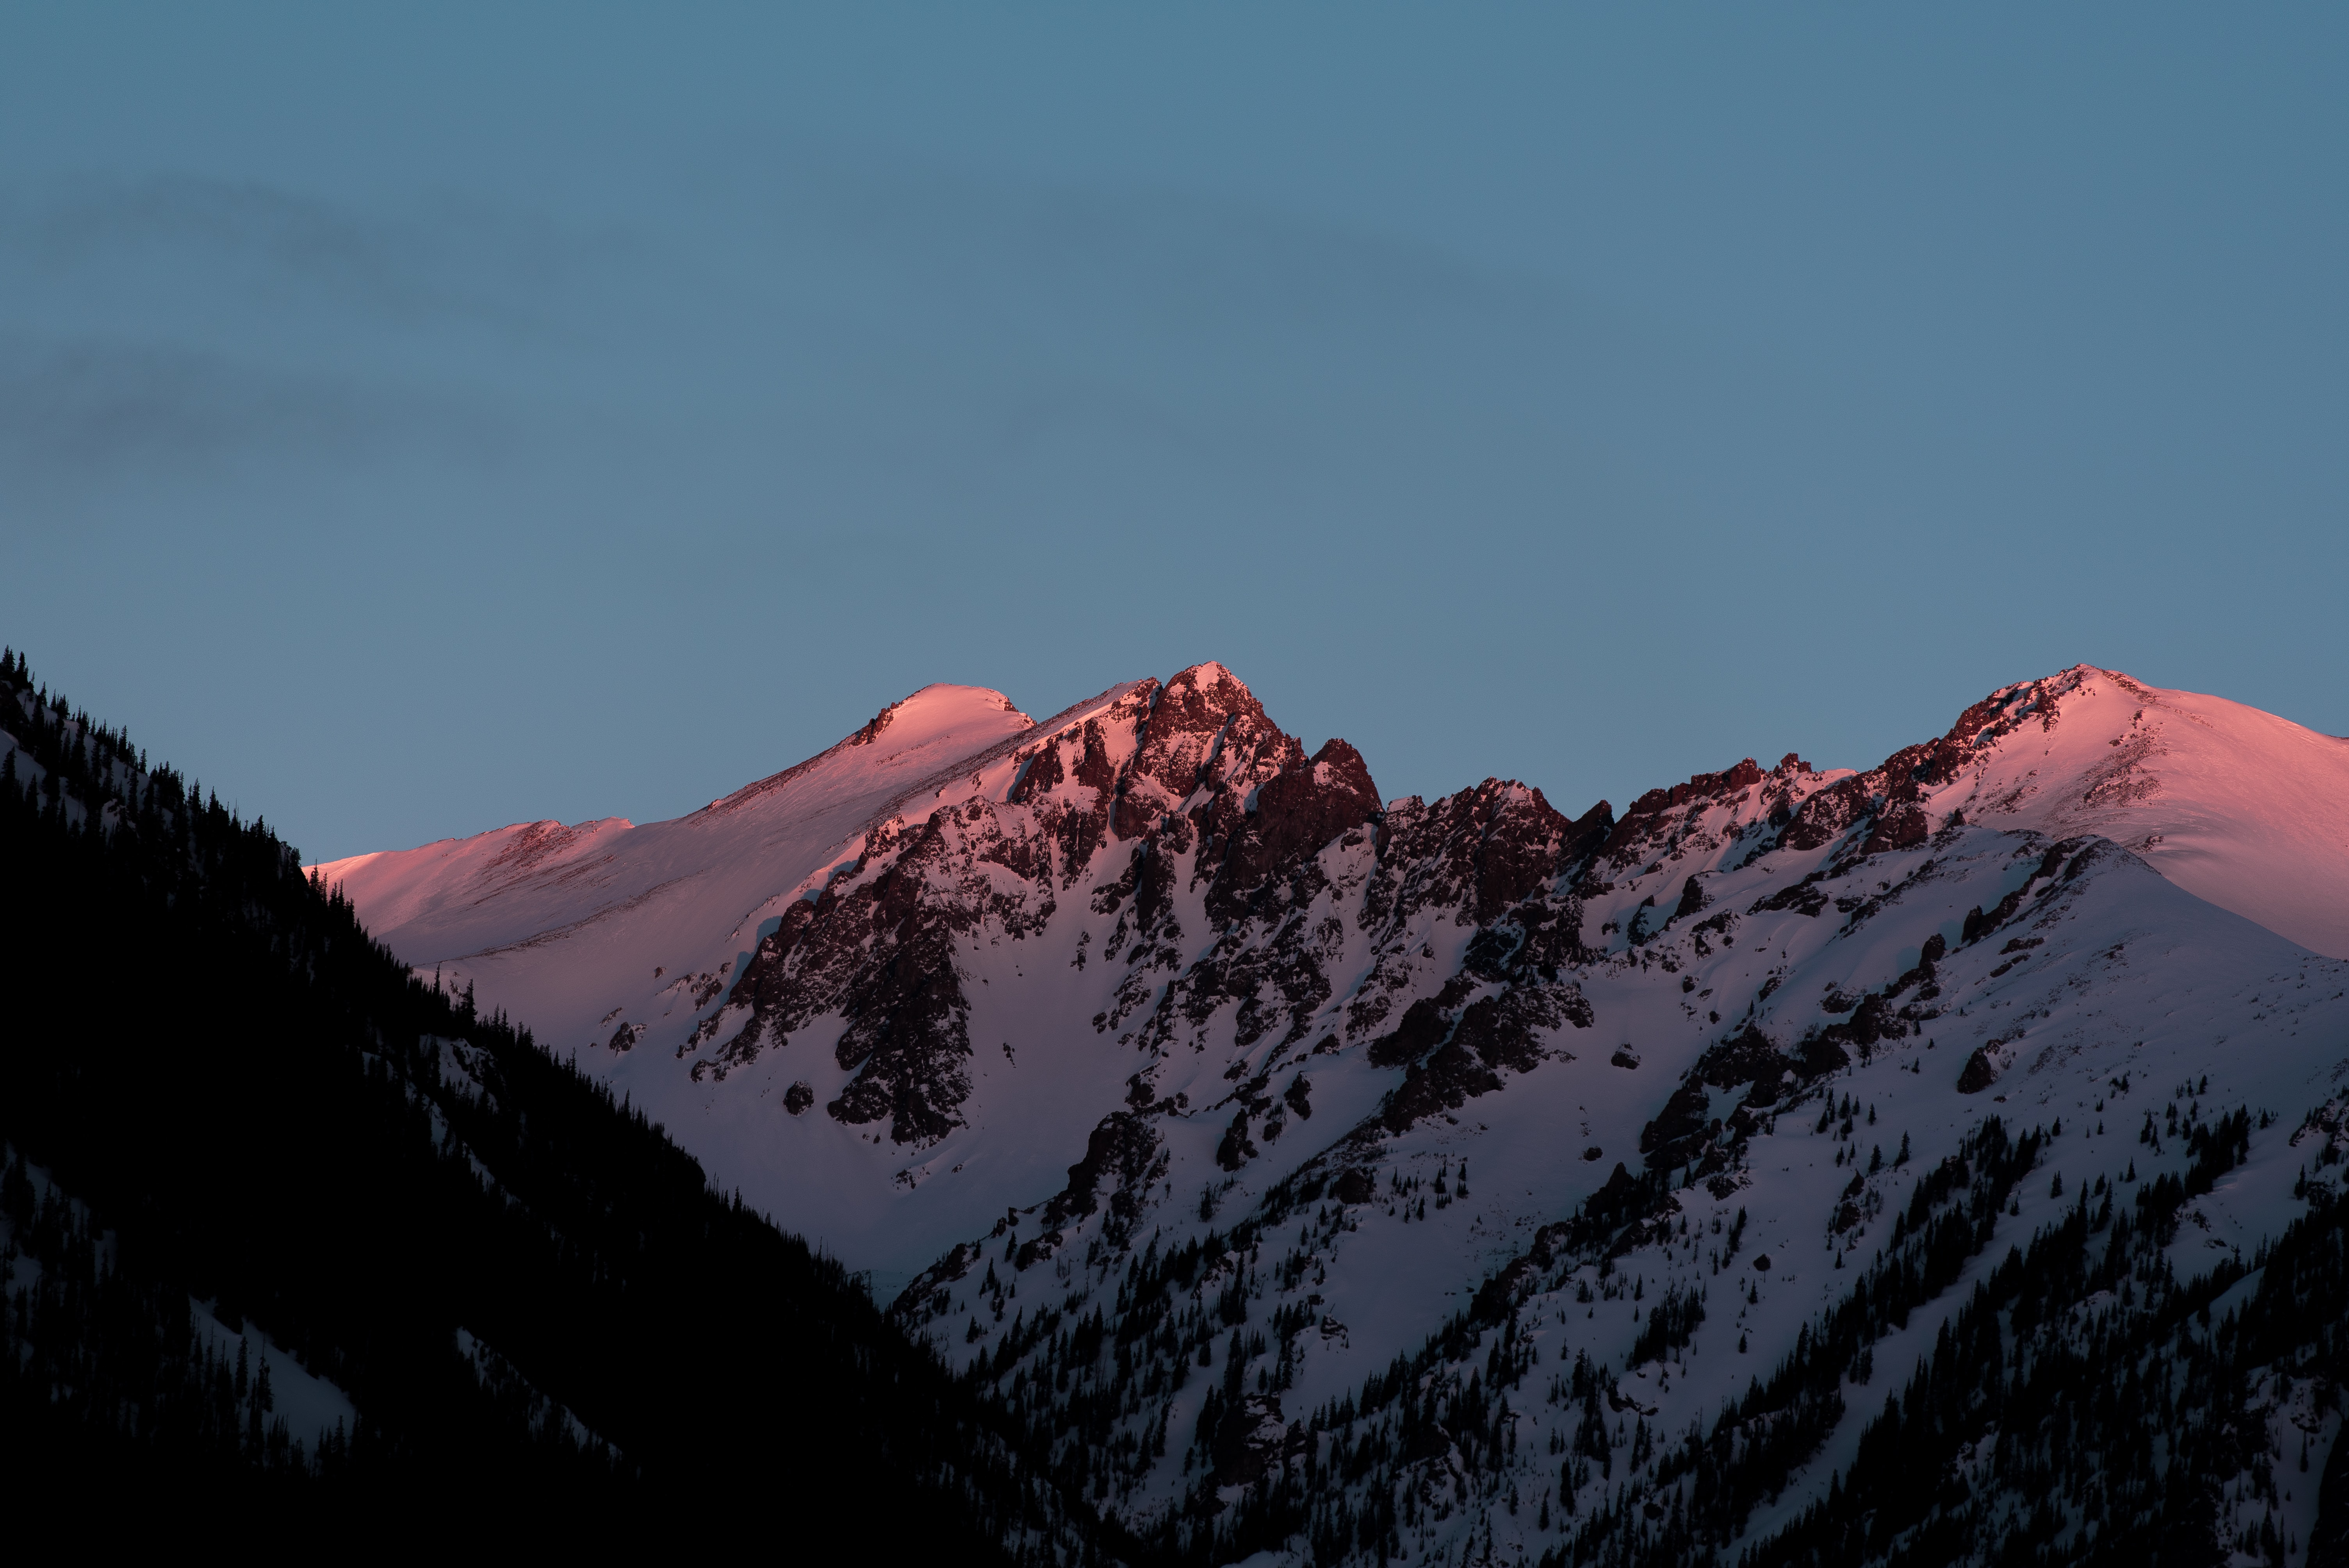 Shadow falling over a mountain ridge during sunset in Silverthorne